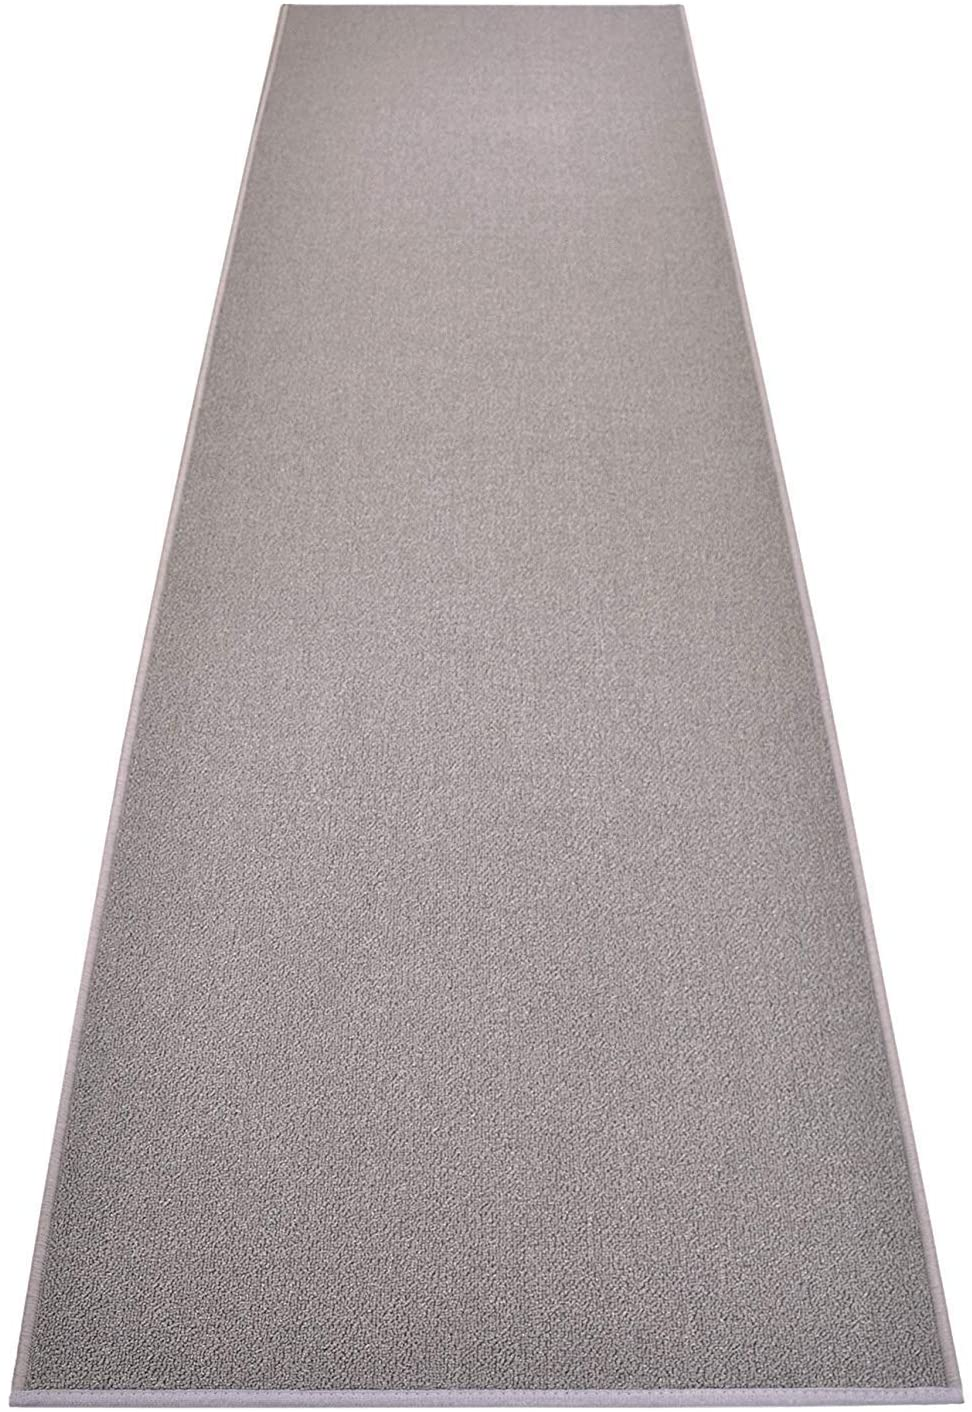 High order Custom Size Solid Color Grey Roll Runner 22 Your Rug Inch x Max 53% OFF Wide